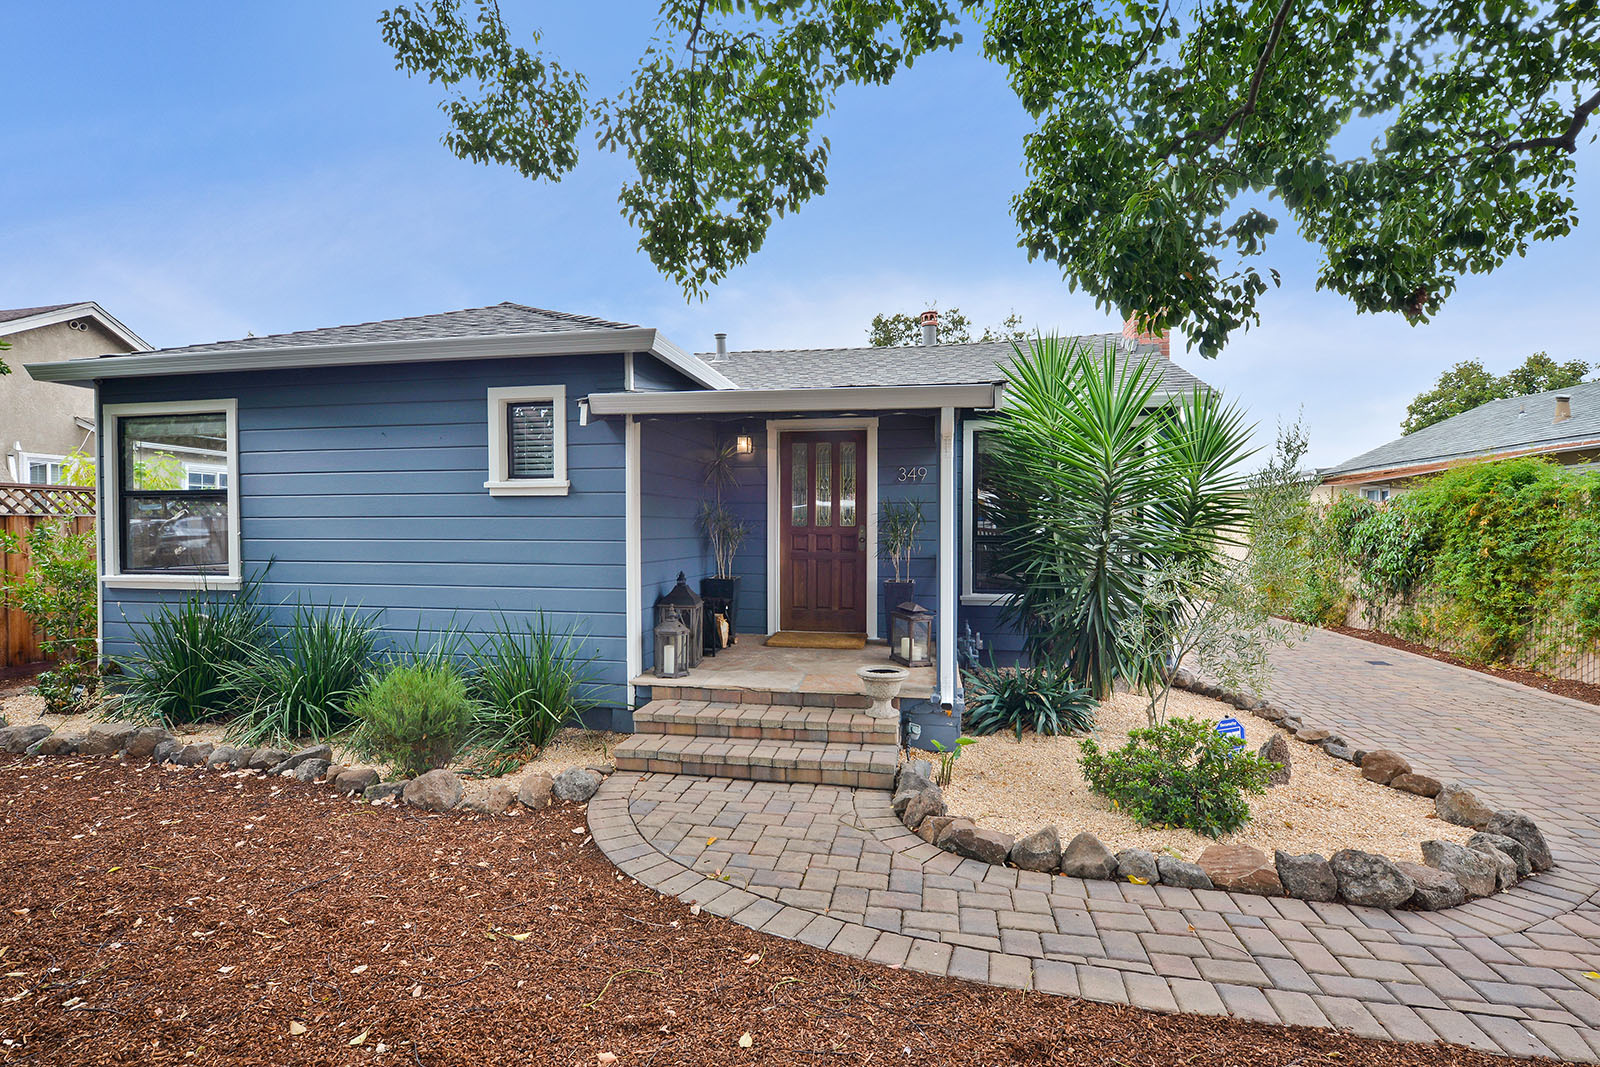 349 5th Ave, Redwood City | $1,100,000